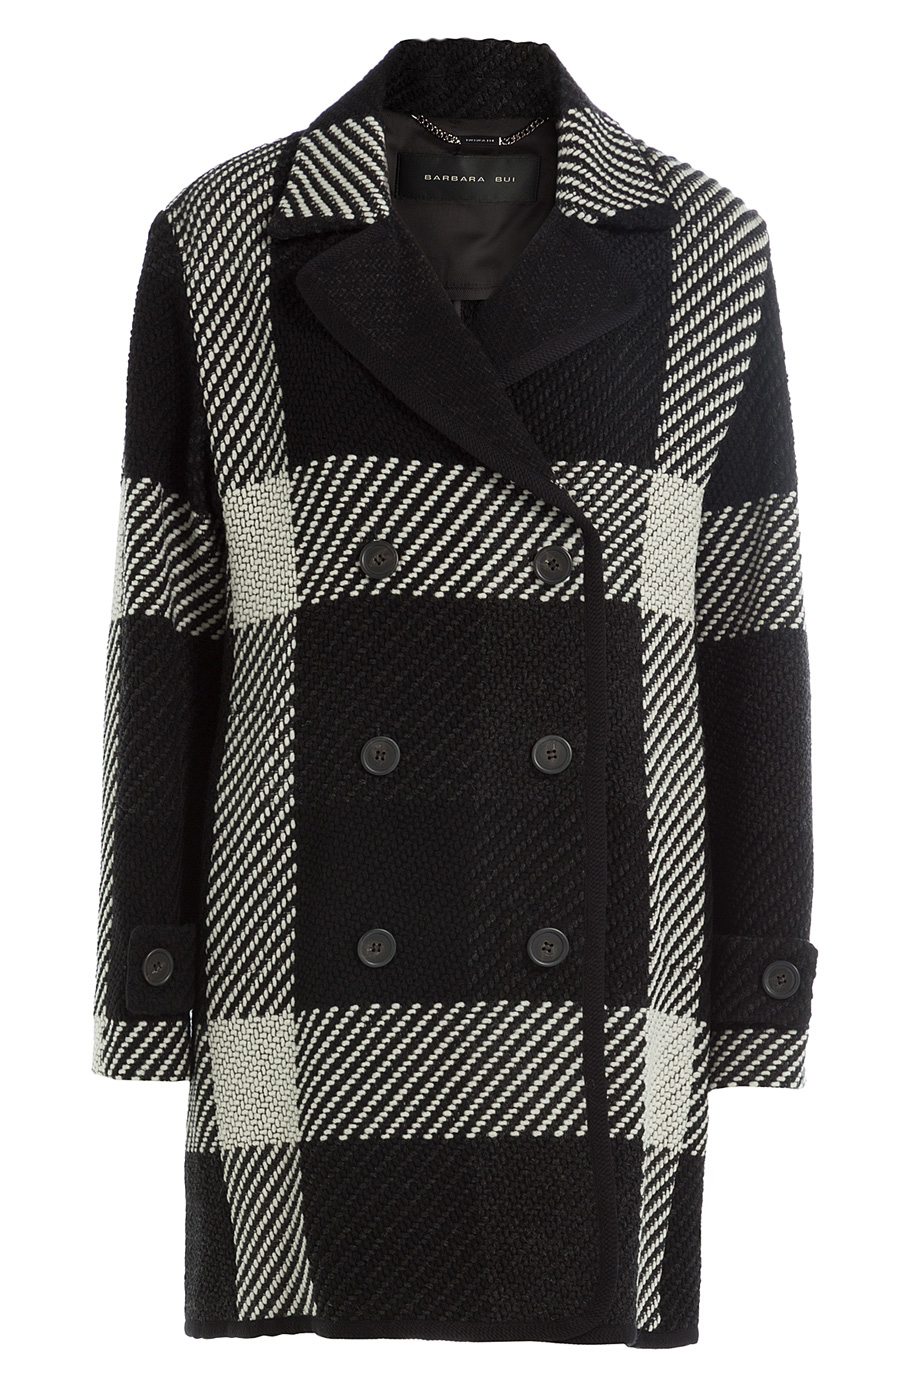 Barbara Bui Plaid Coat In Black